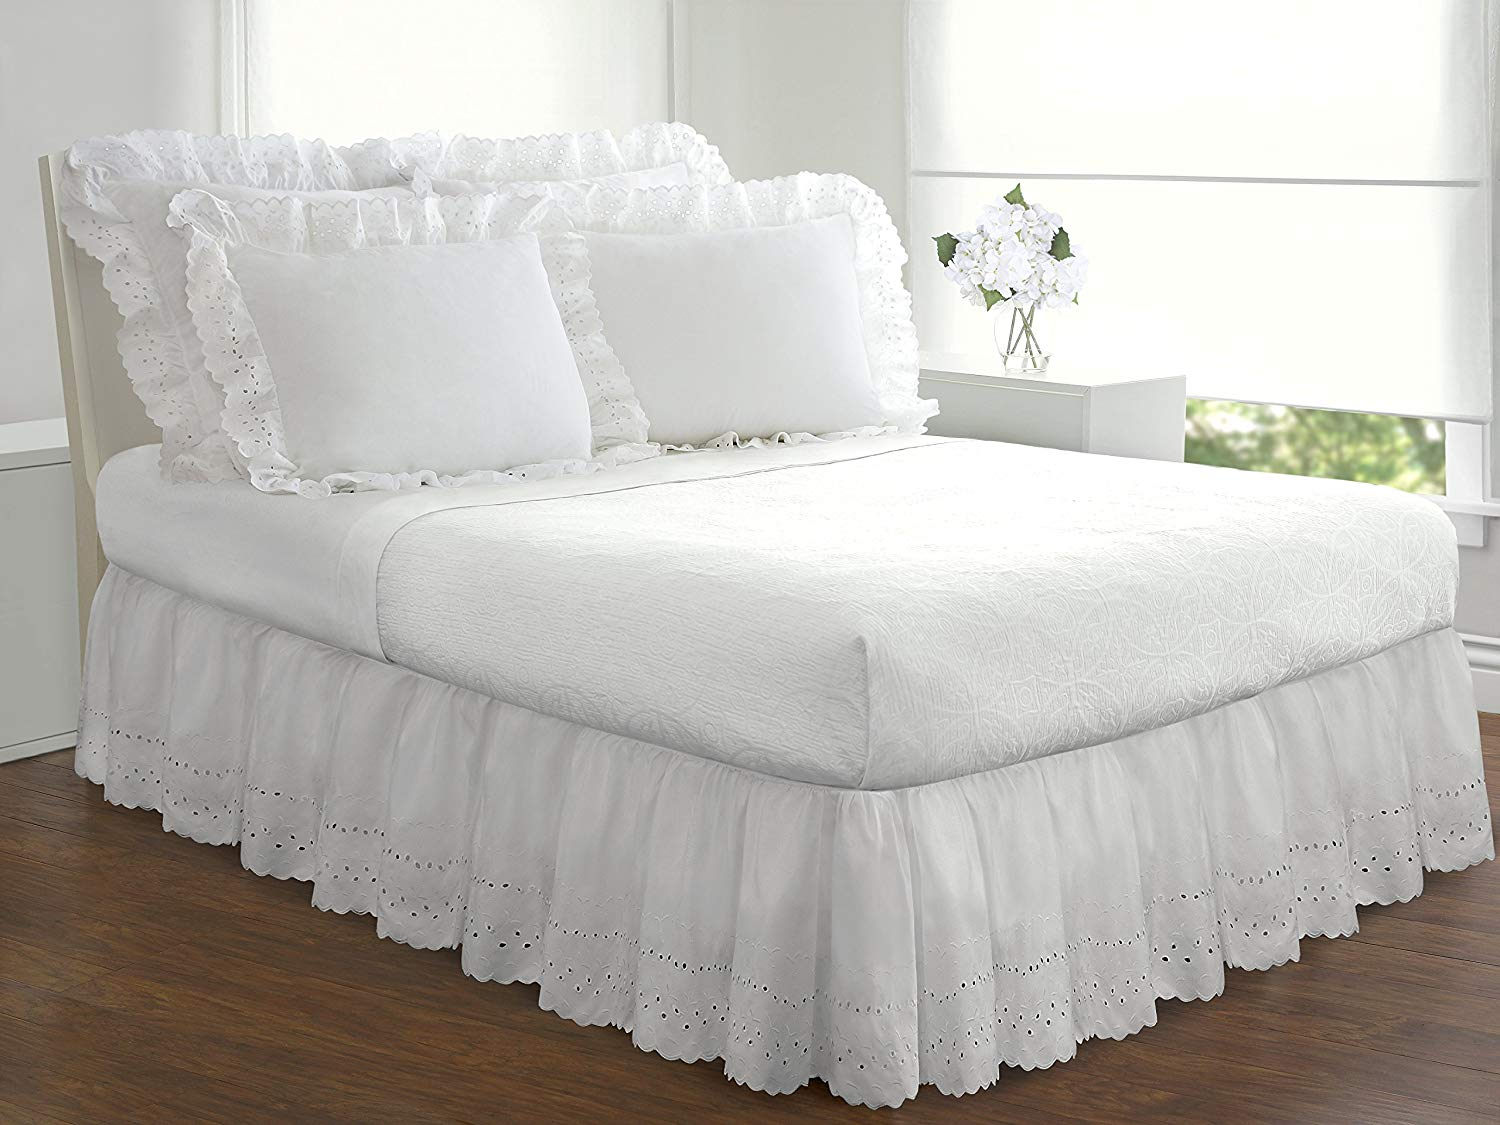 Image of: White Ruffle Bed Skirt Lace